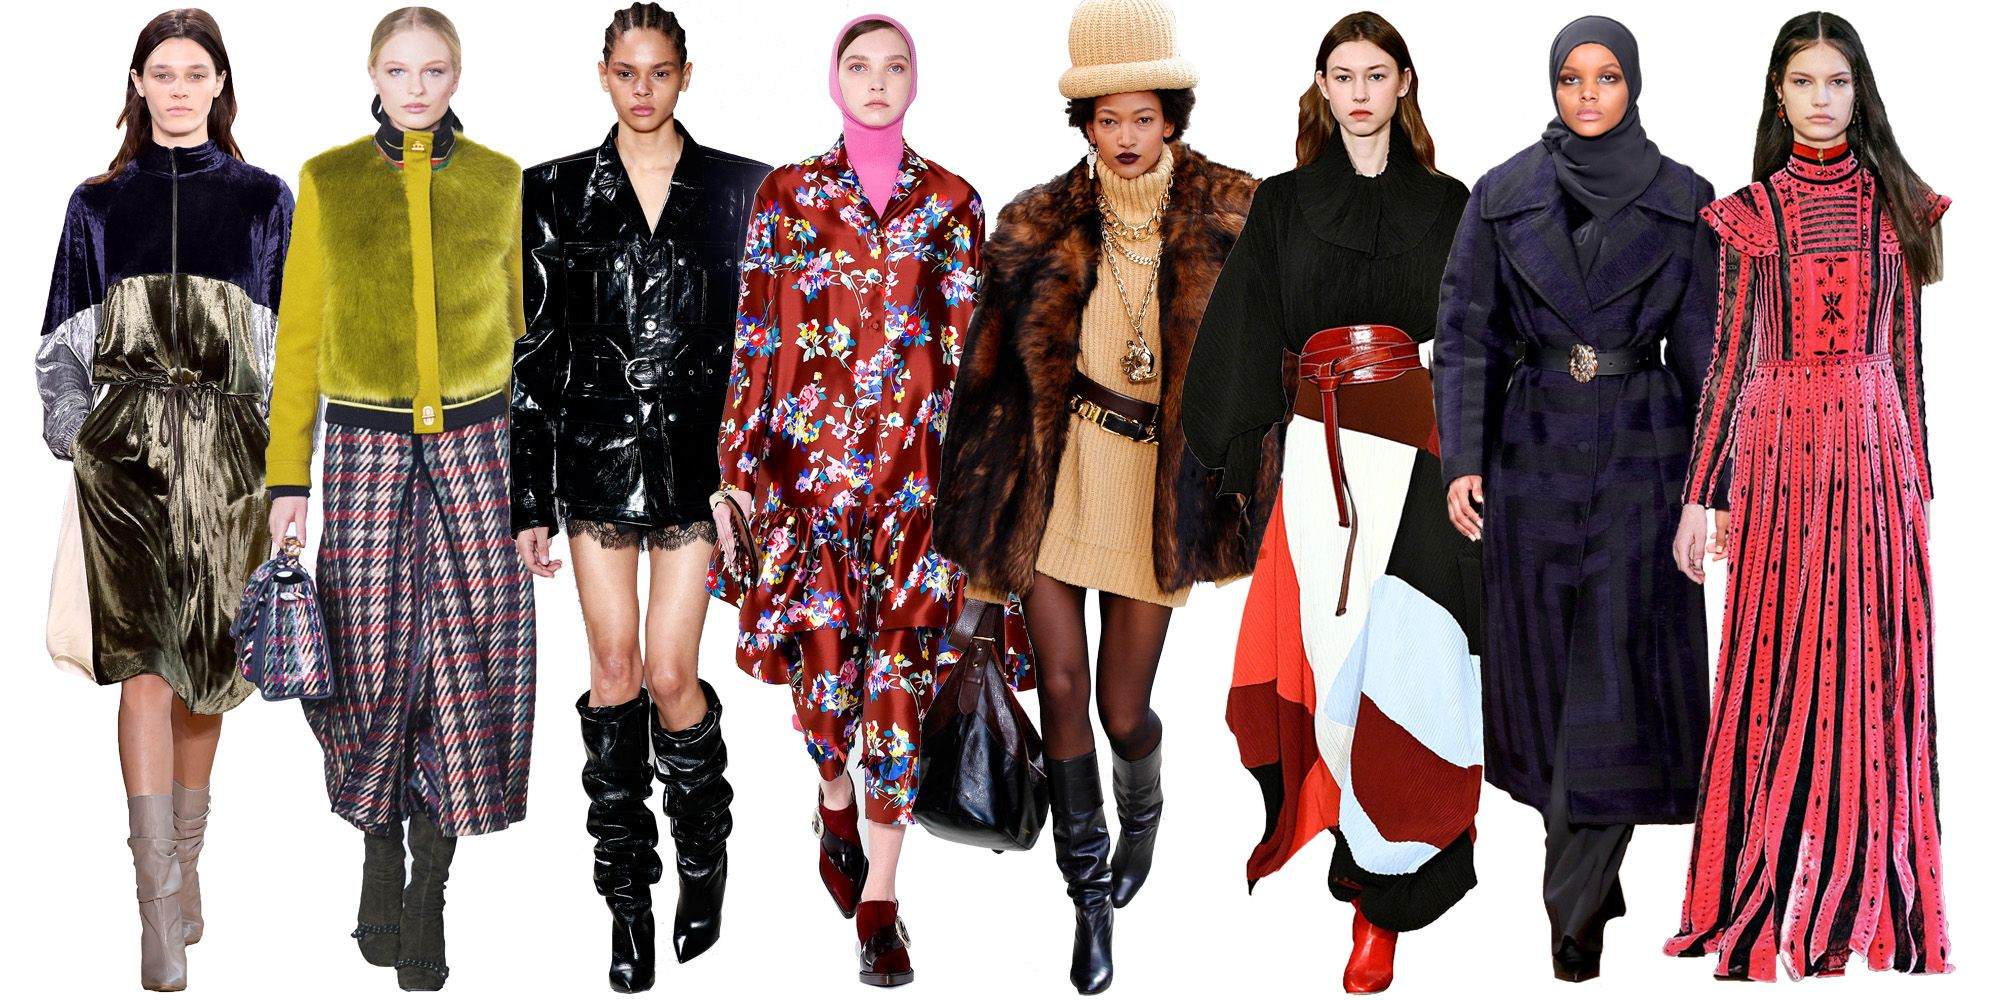 96bf8987cdf62 Fall 2017 Fashion Trends - Guide to Fall 2017 Styles and Runway Trends